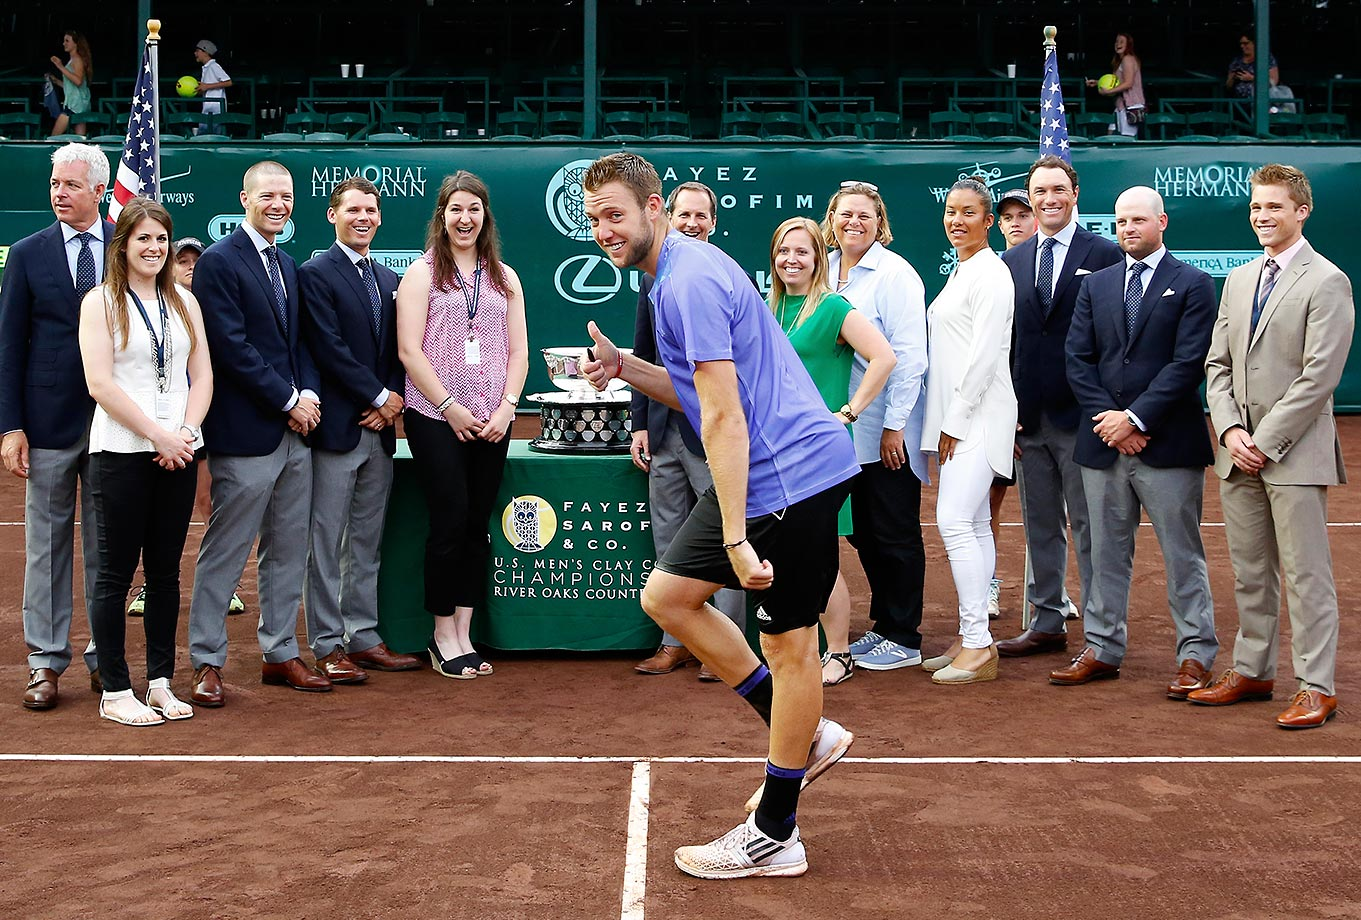 Jack Sock photobombs a group picture after defeating Sam Querrey at the U.S. Men's Clay Court Championships at River Oaks Country Club.